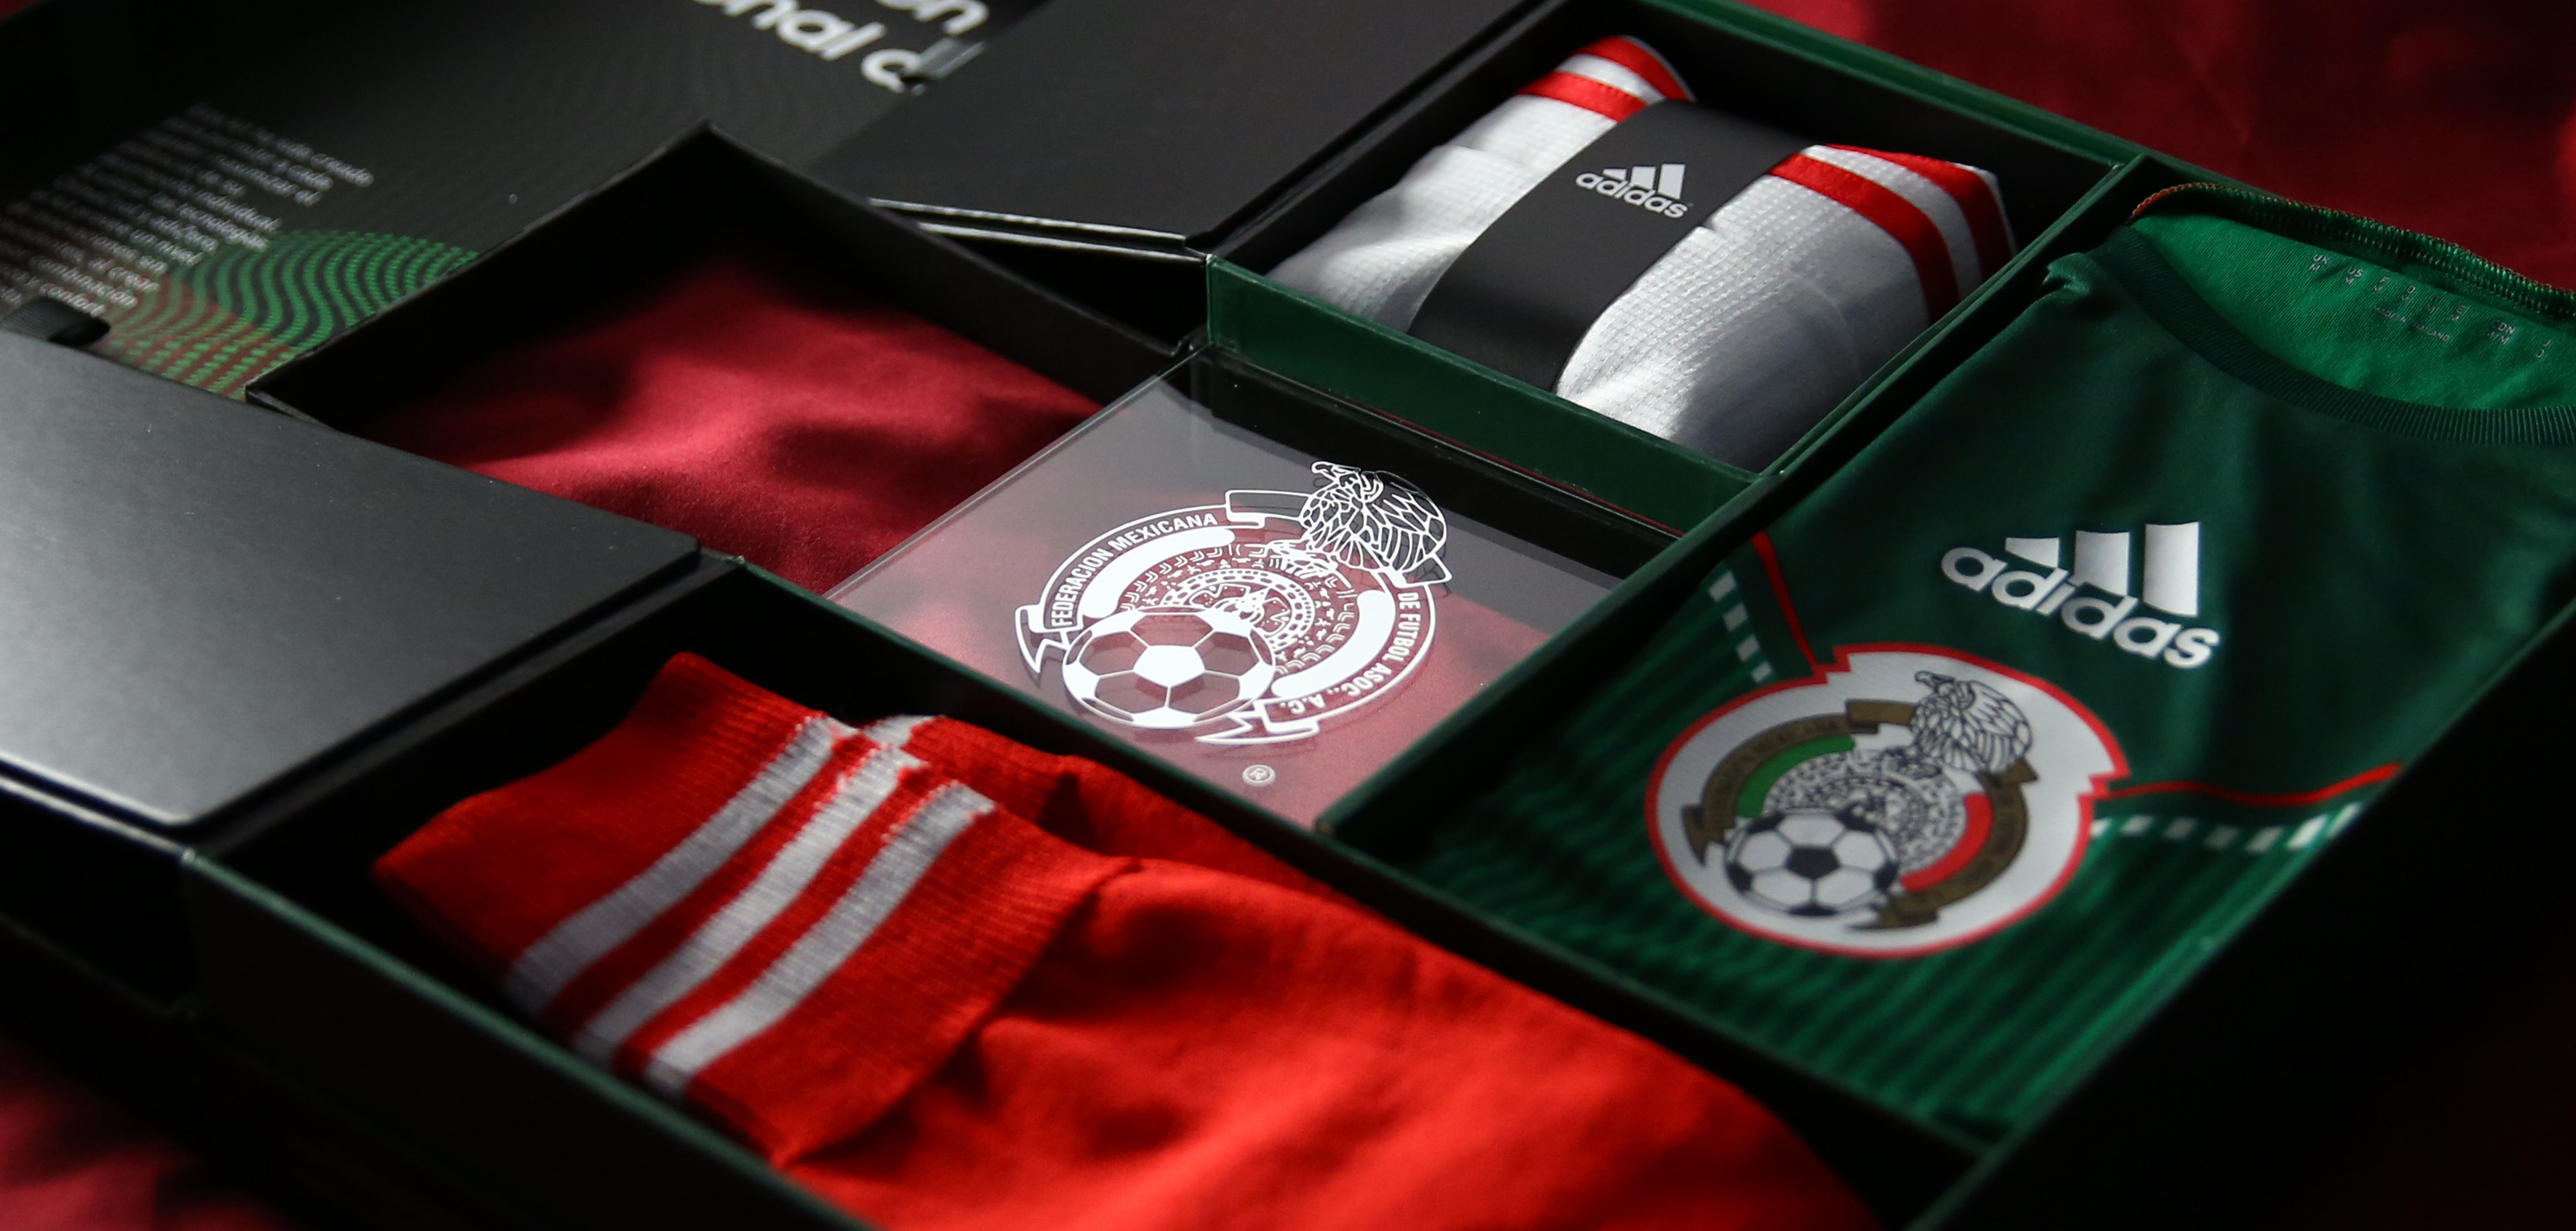 MEXICO soccer 9 wallpaper background 5058x2418